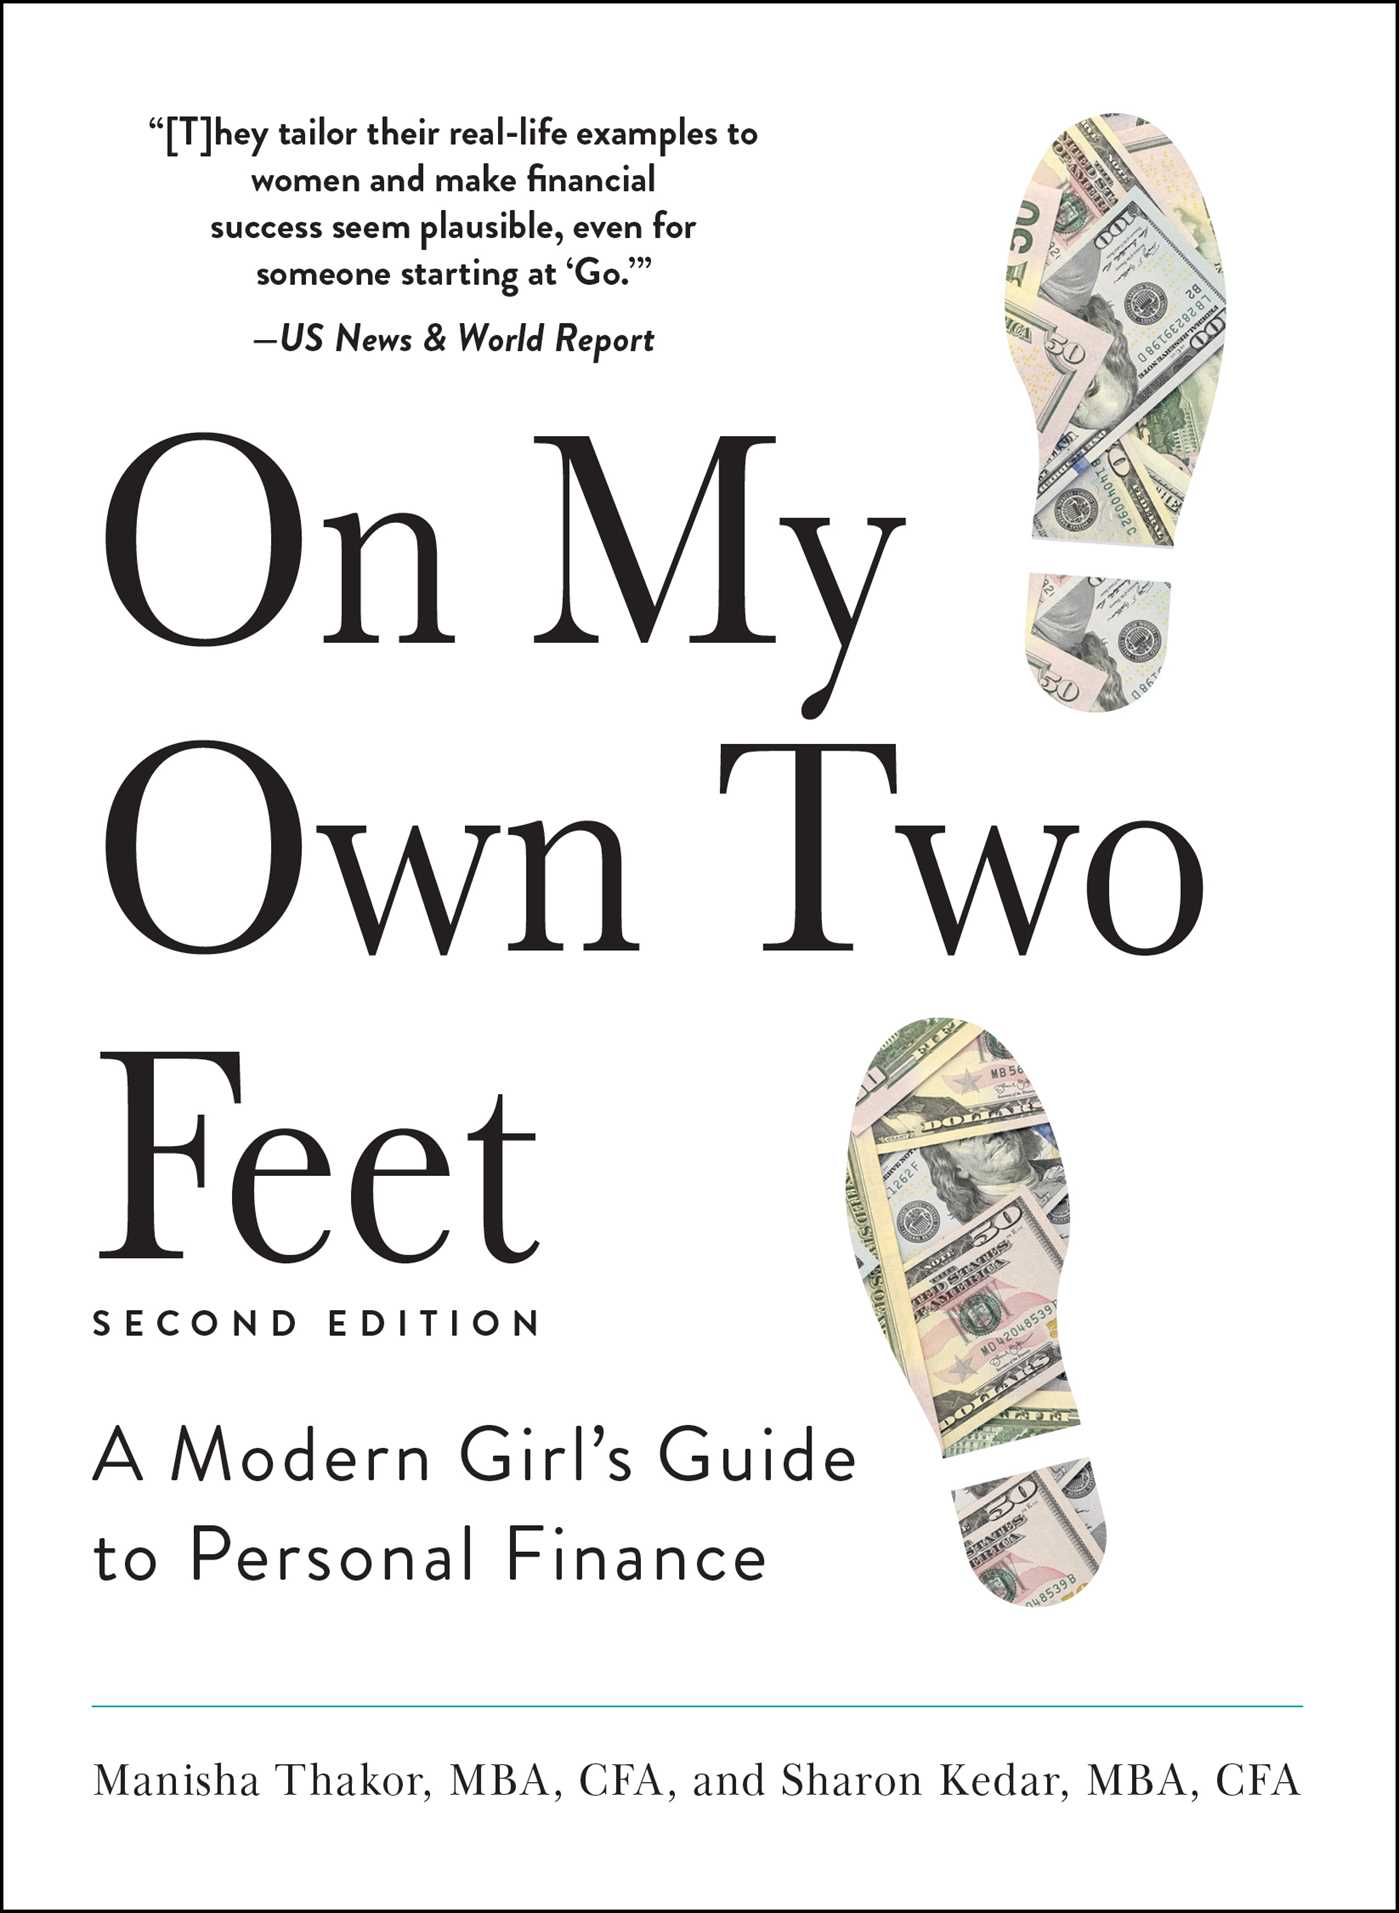 Download Ebook On My Own Two Feet by Manisha Thakor Pdf